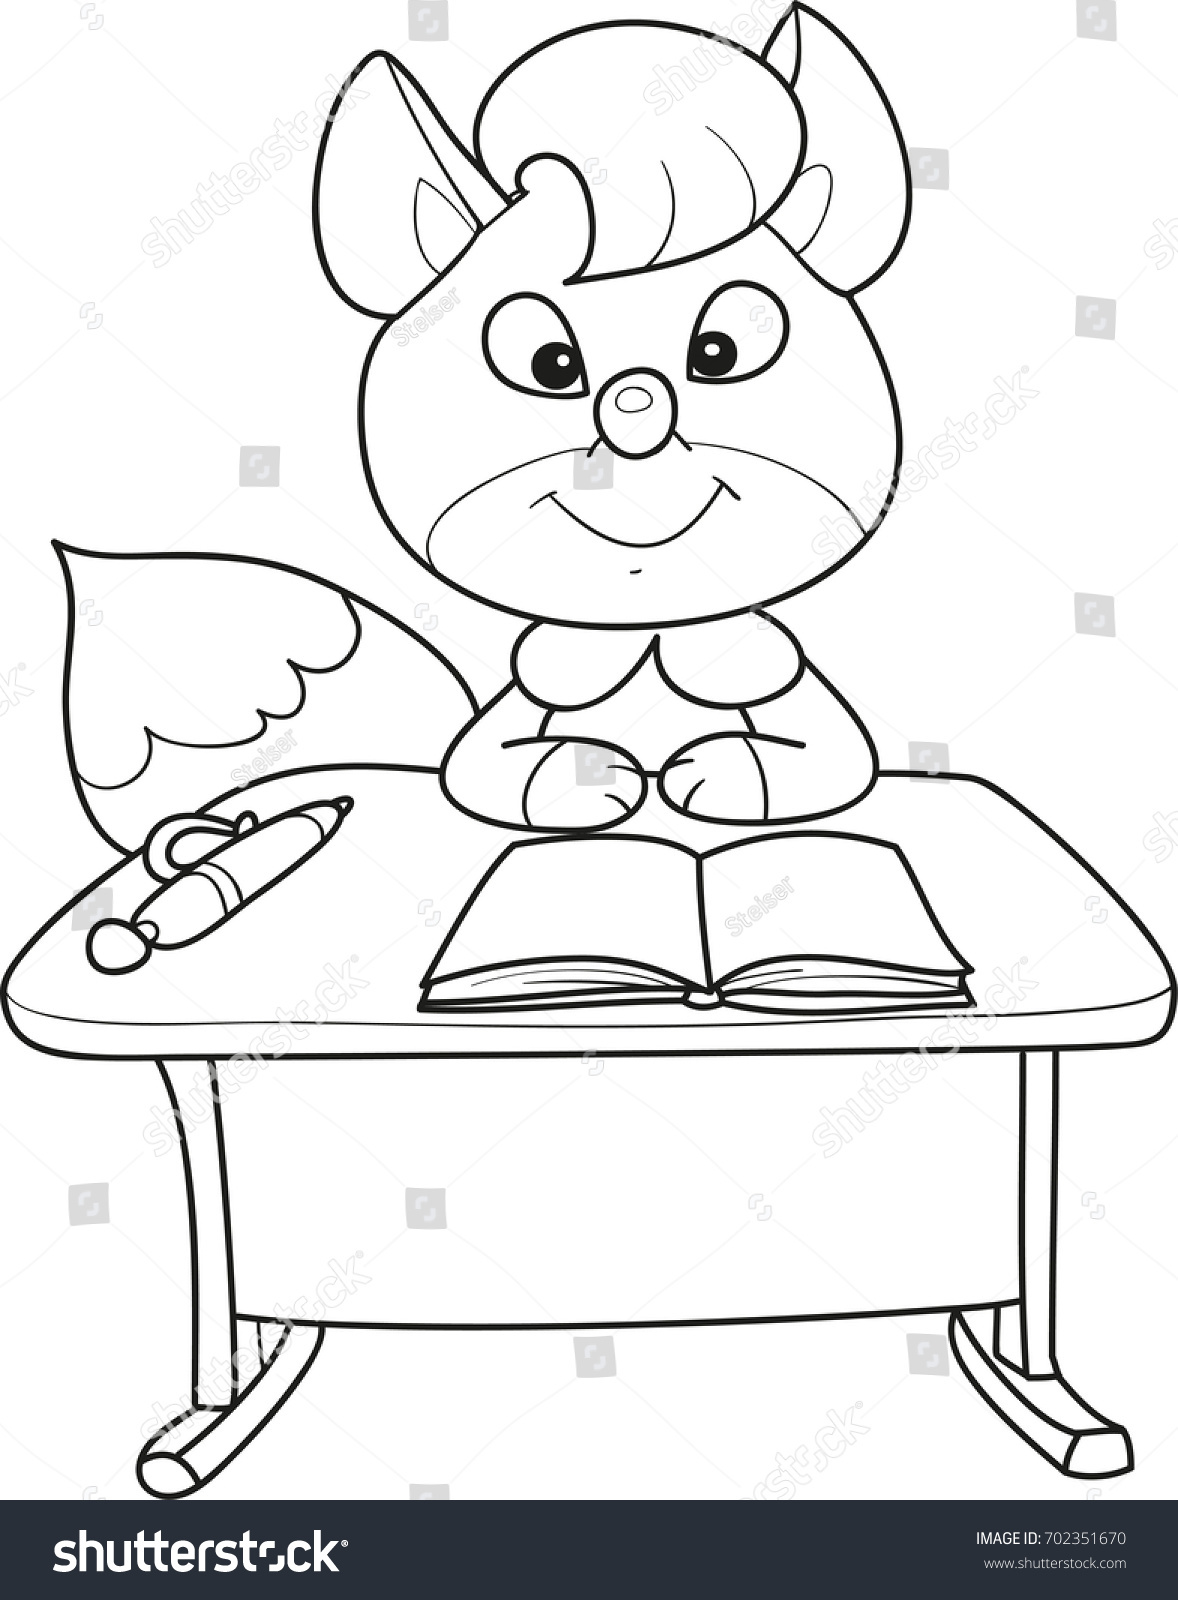 Coloring Page Outline Of Cartoon Little Fox Sitting At School Desk With Pen And Notebook